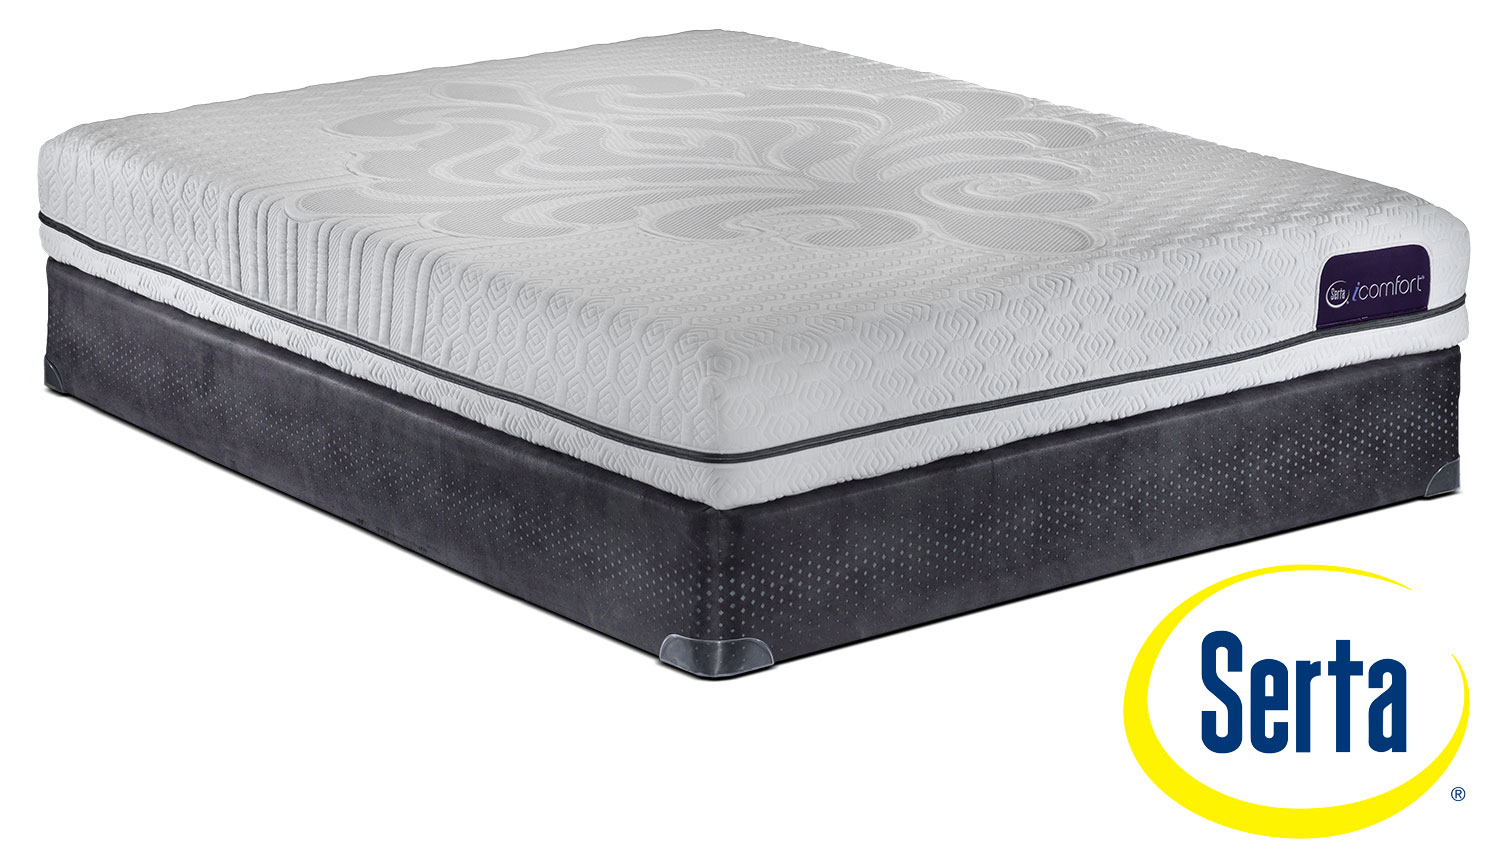 Serta Icomfort Eco Levity Firm Twin Xl Mattress And Boxspring Set Leon 39 S